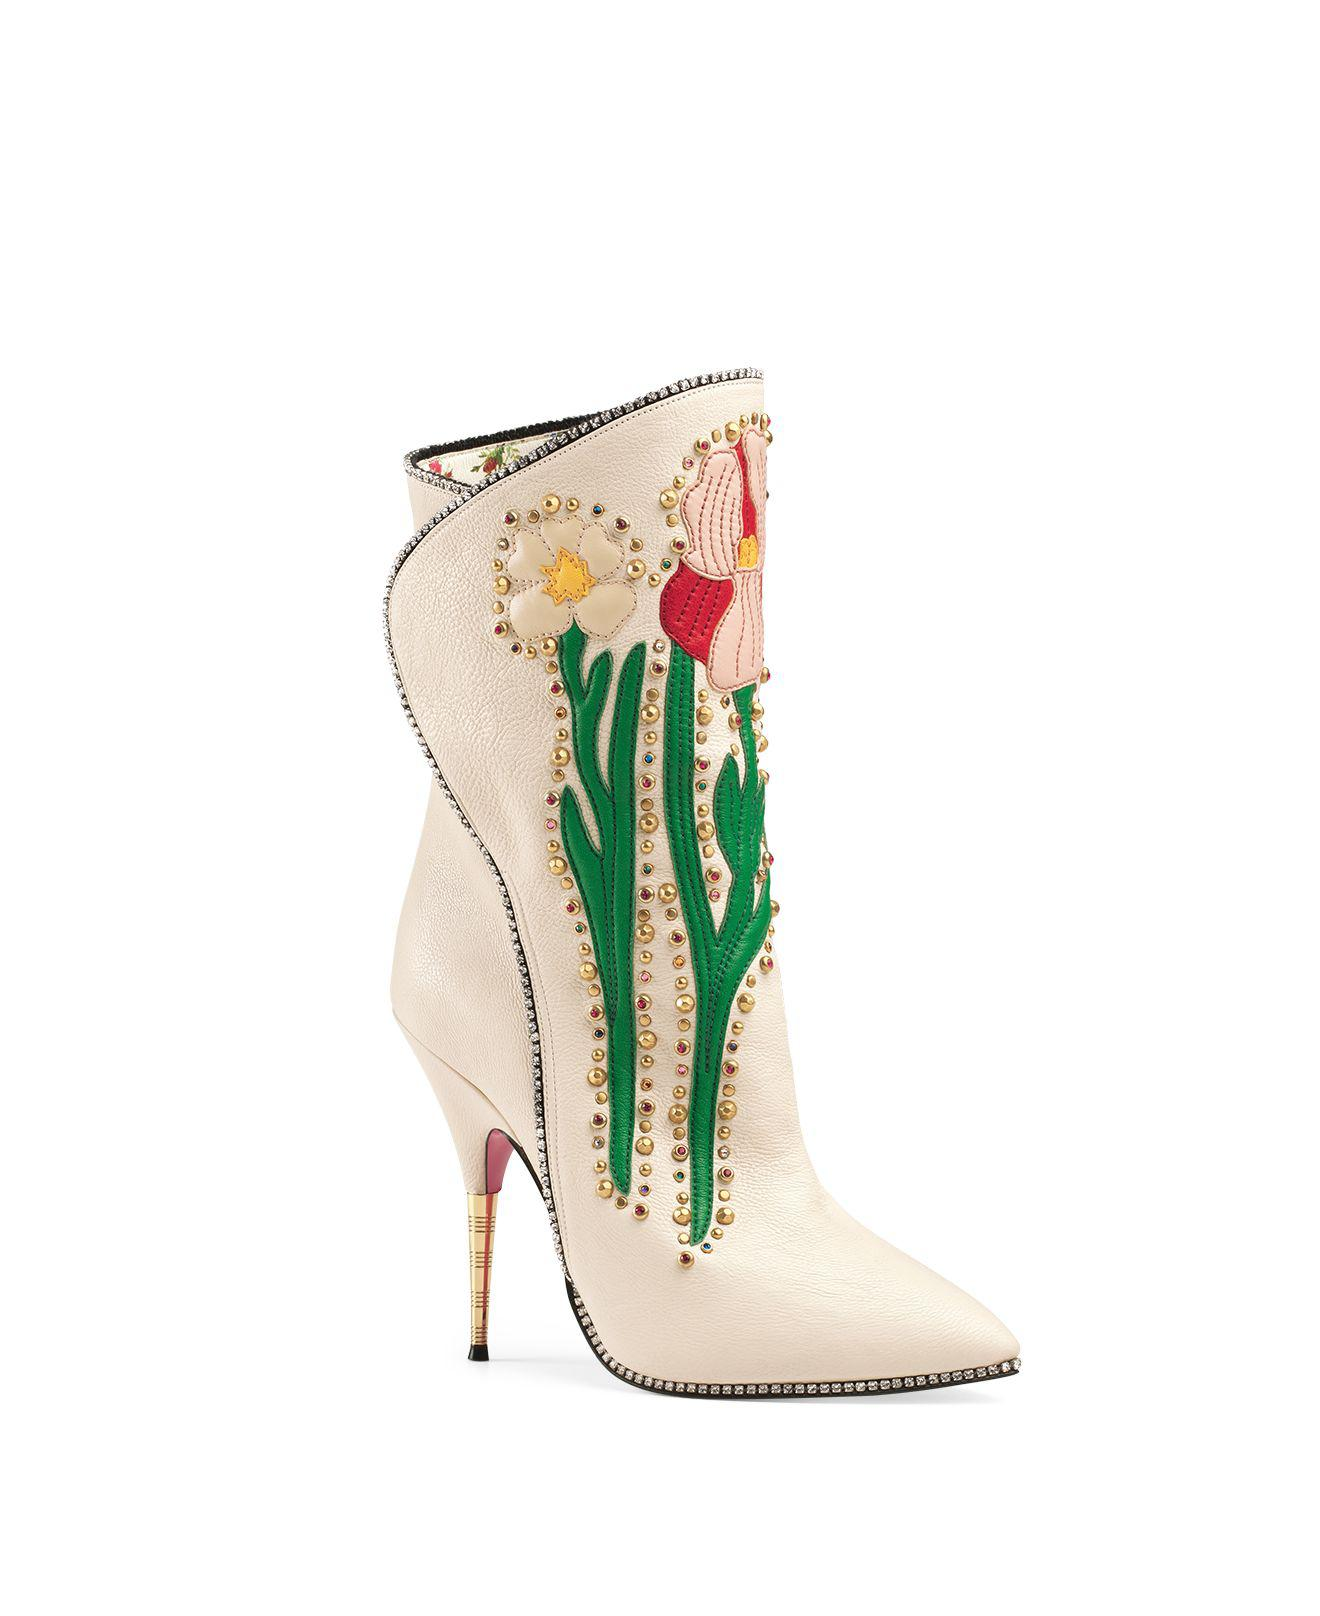 Gucci Fosca Crystal Embroidered Booties